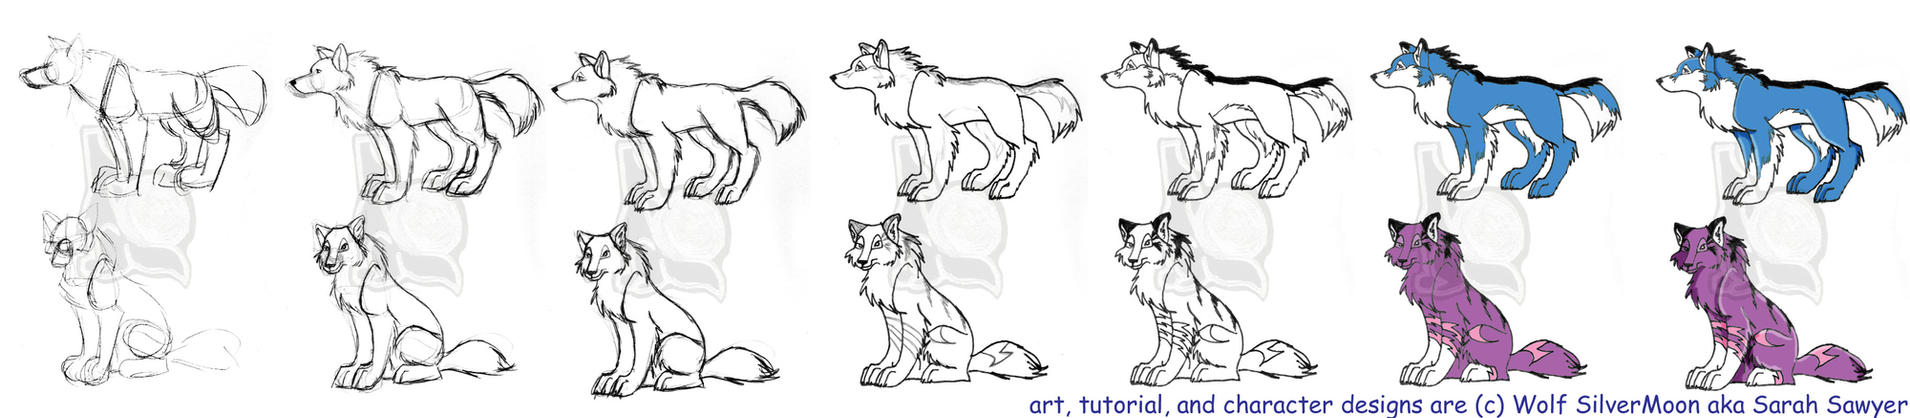 How to draw wolf tutorials favourites by selenegt on deviantart lucky978 1648 180 drawing a wolf wsm style by wolfsilvermoon ccuart Gallery